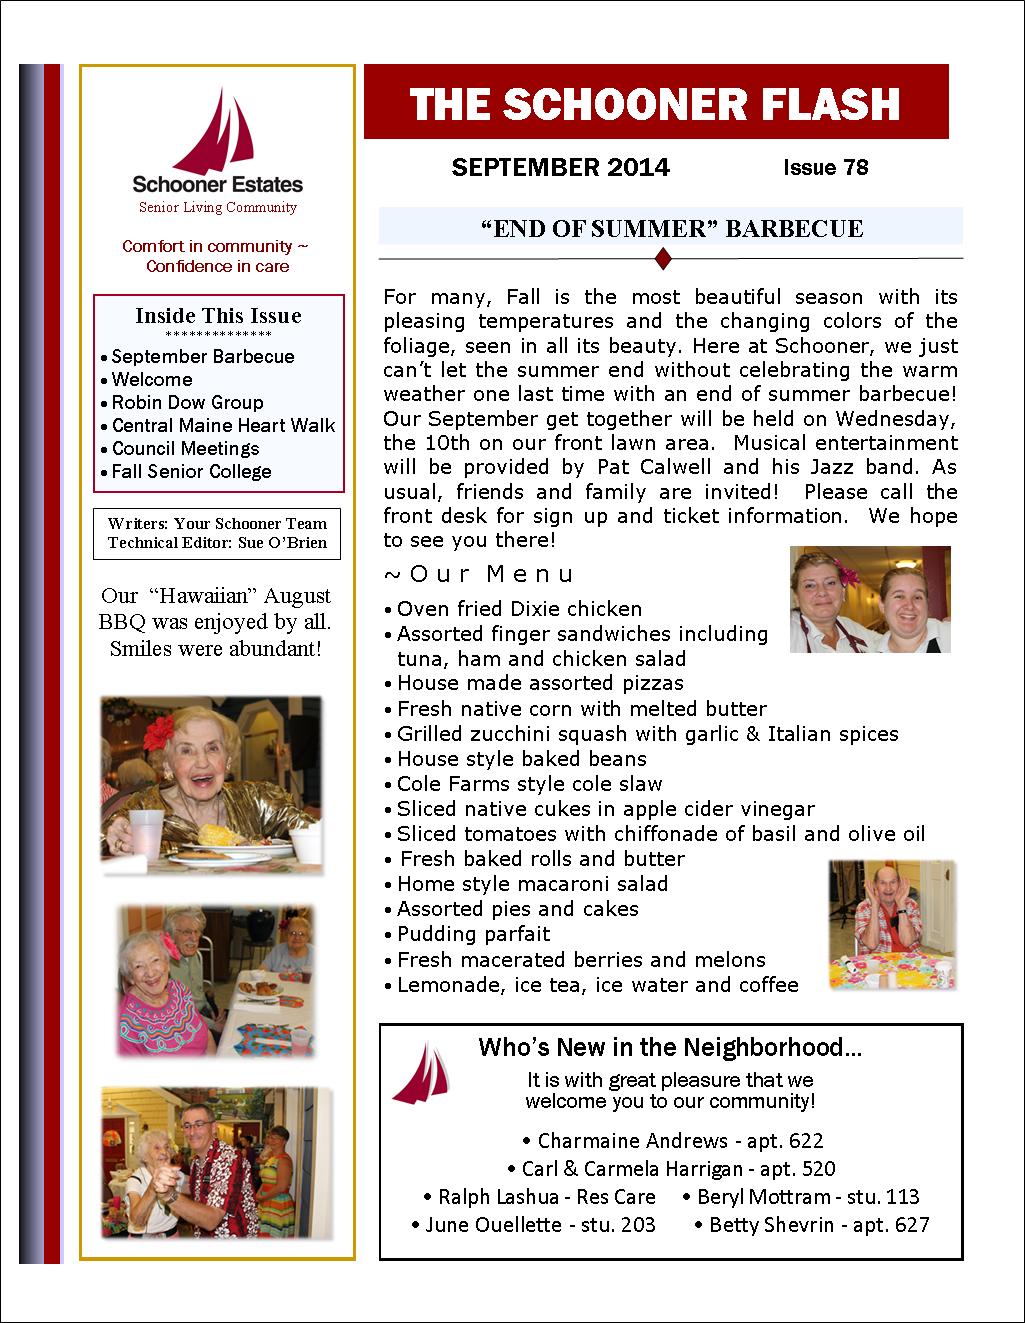 September 2014 Schooner Flash page 1